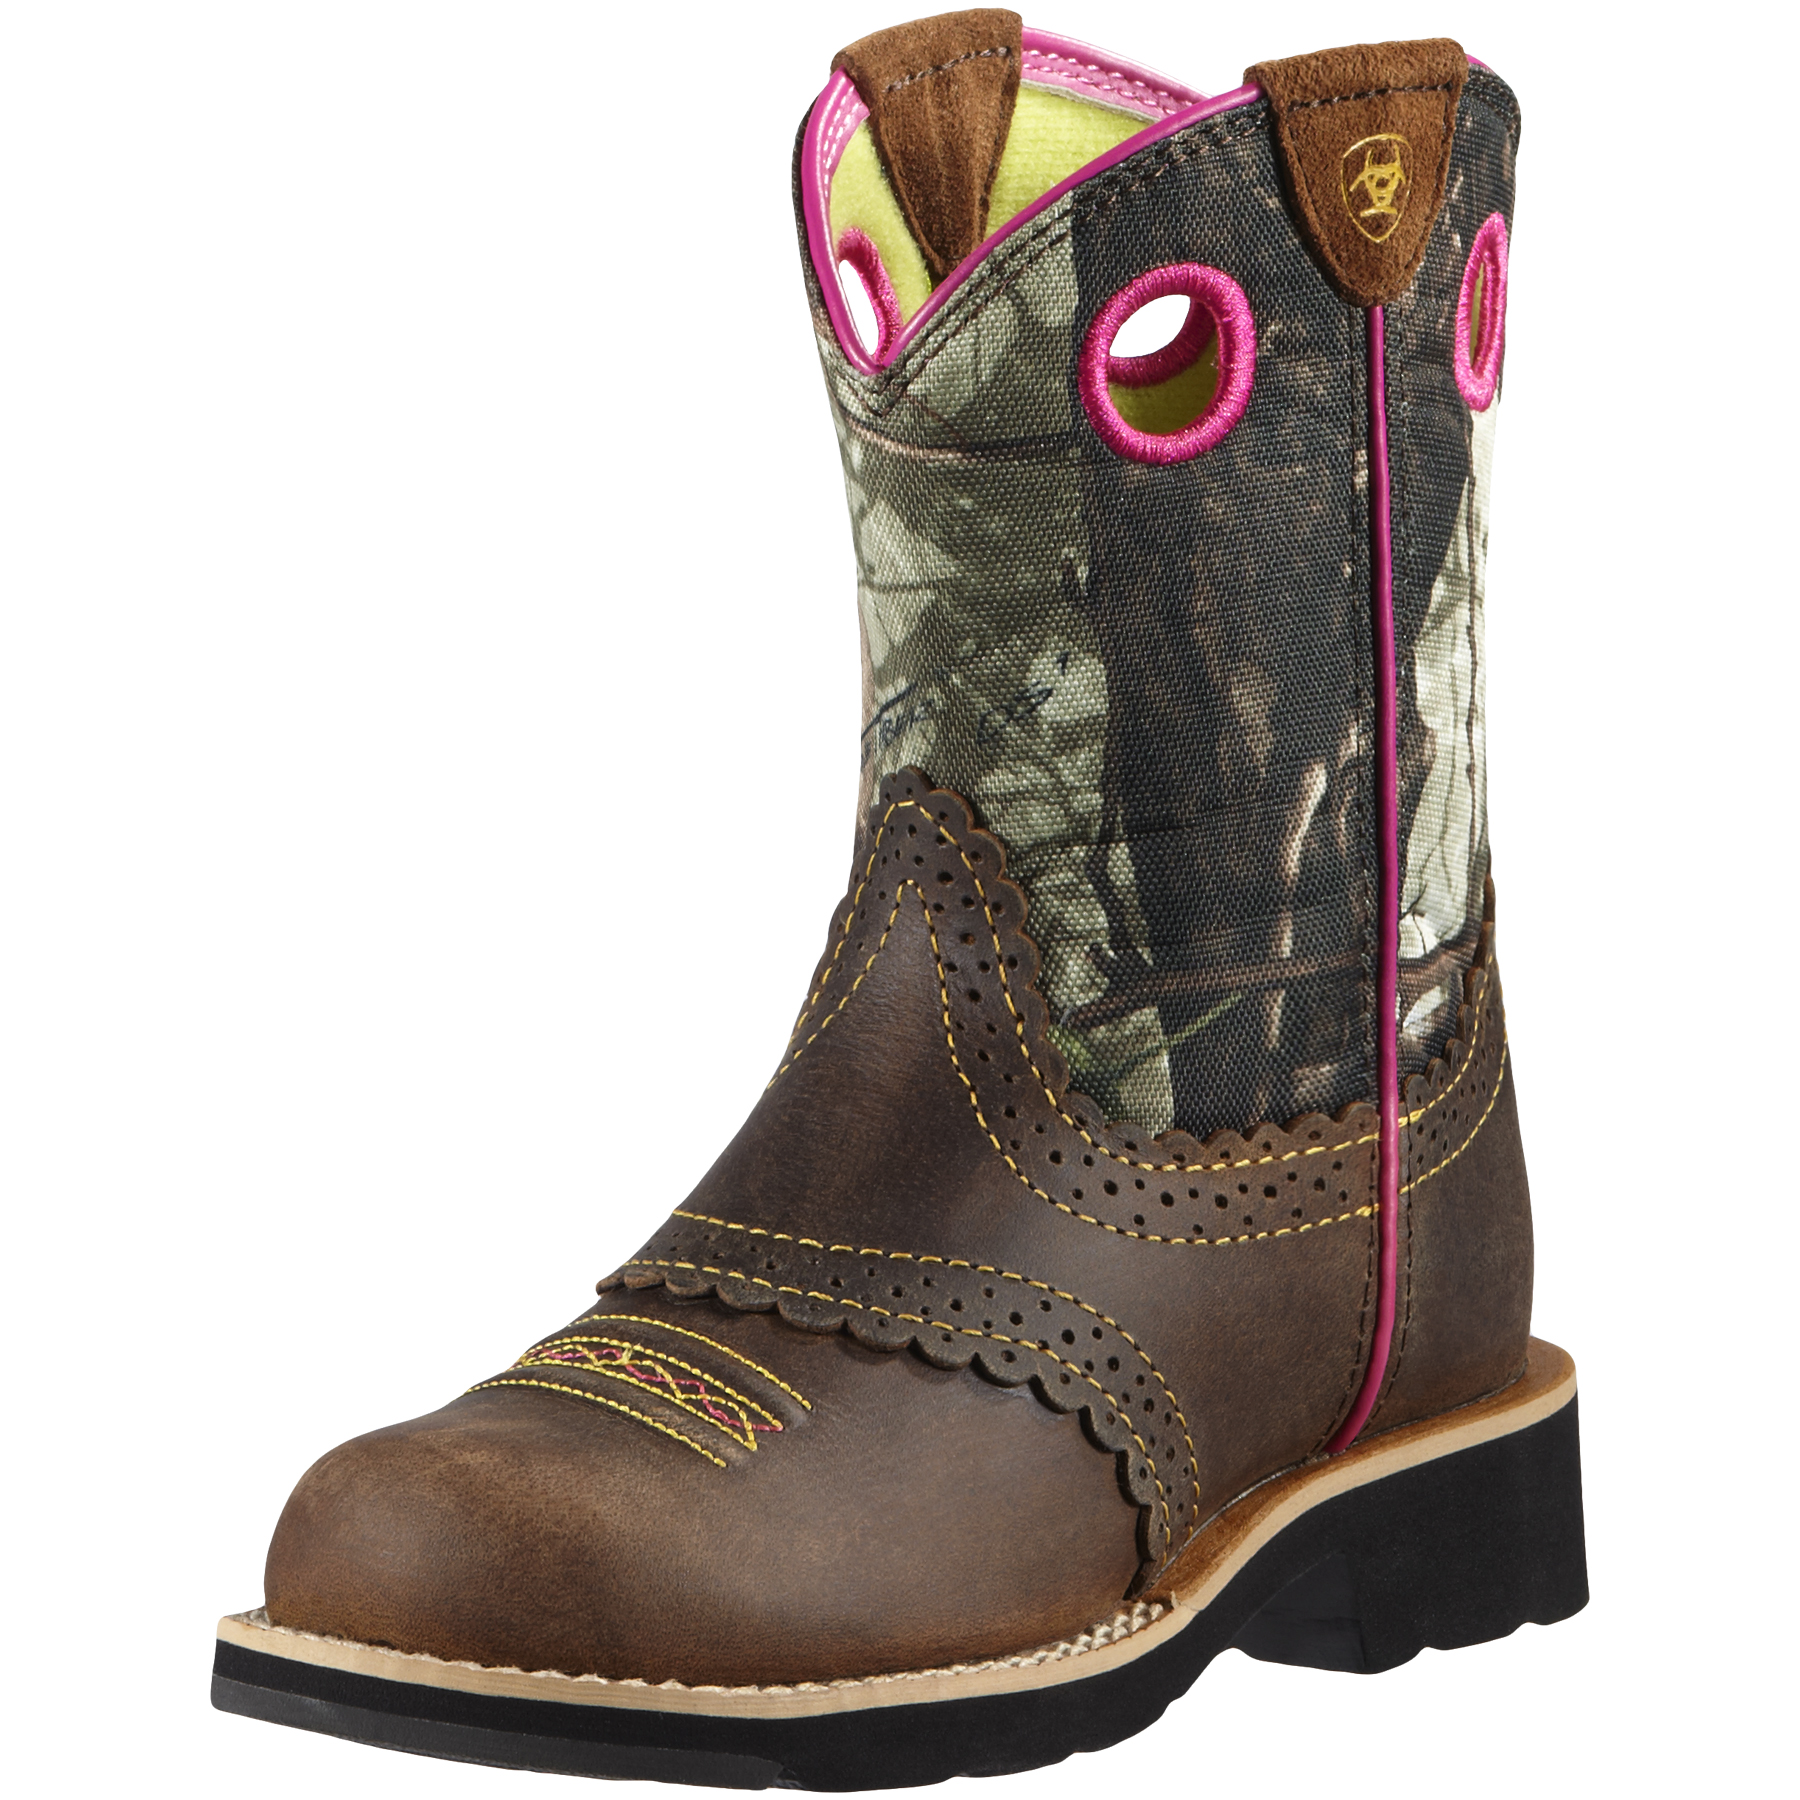 Girl's Ariat Fatbaby Camo Cowgirl Boots #10008724 |